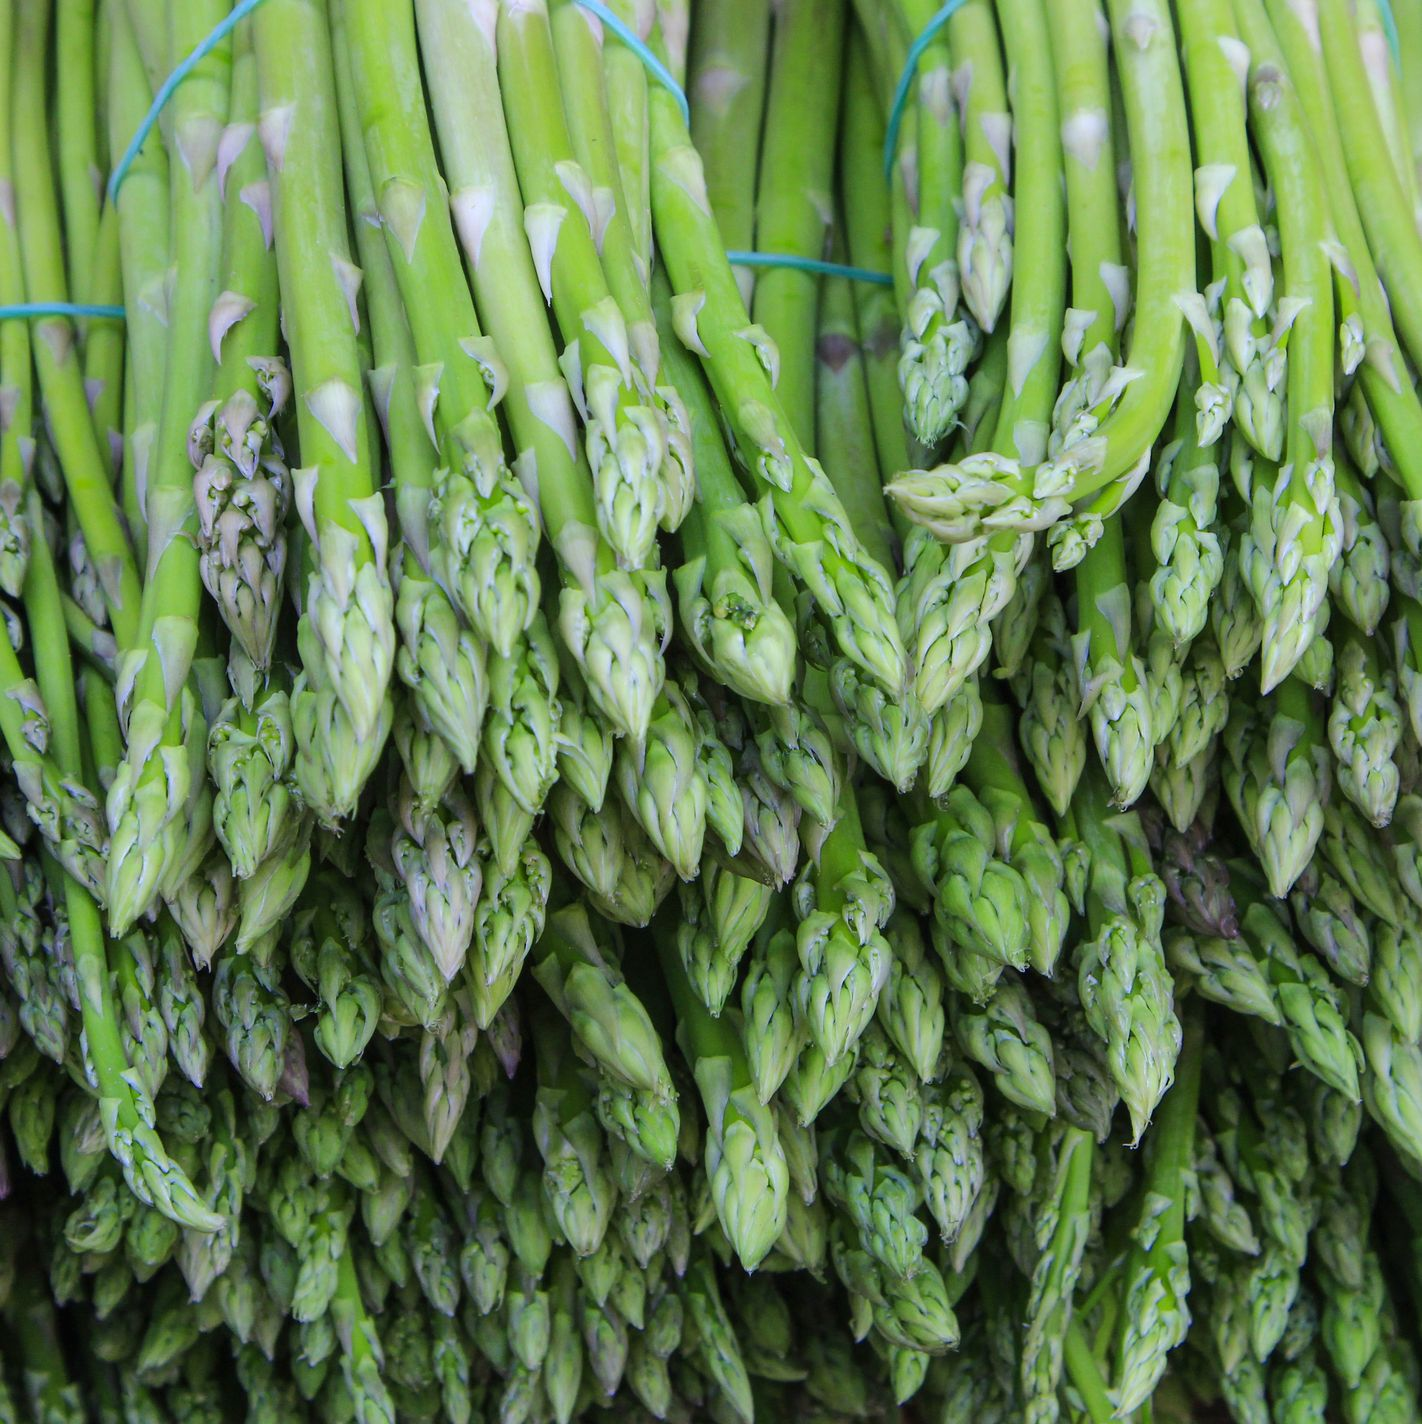 Asparagus selling in market